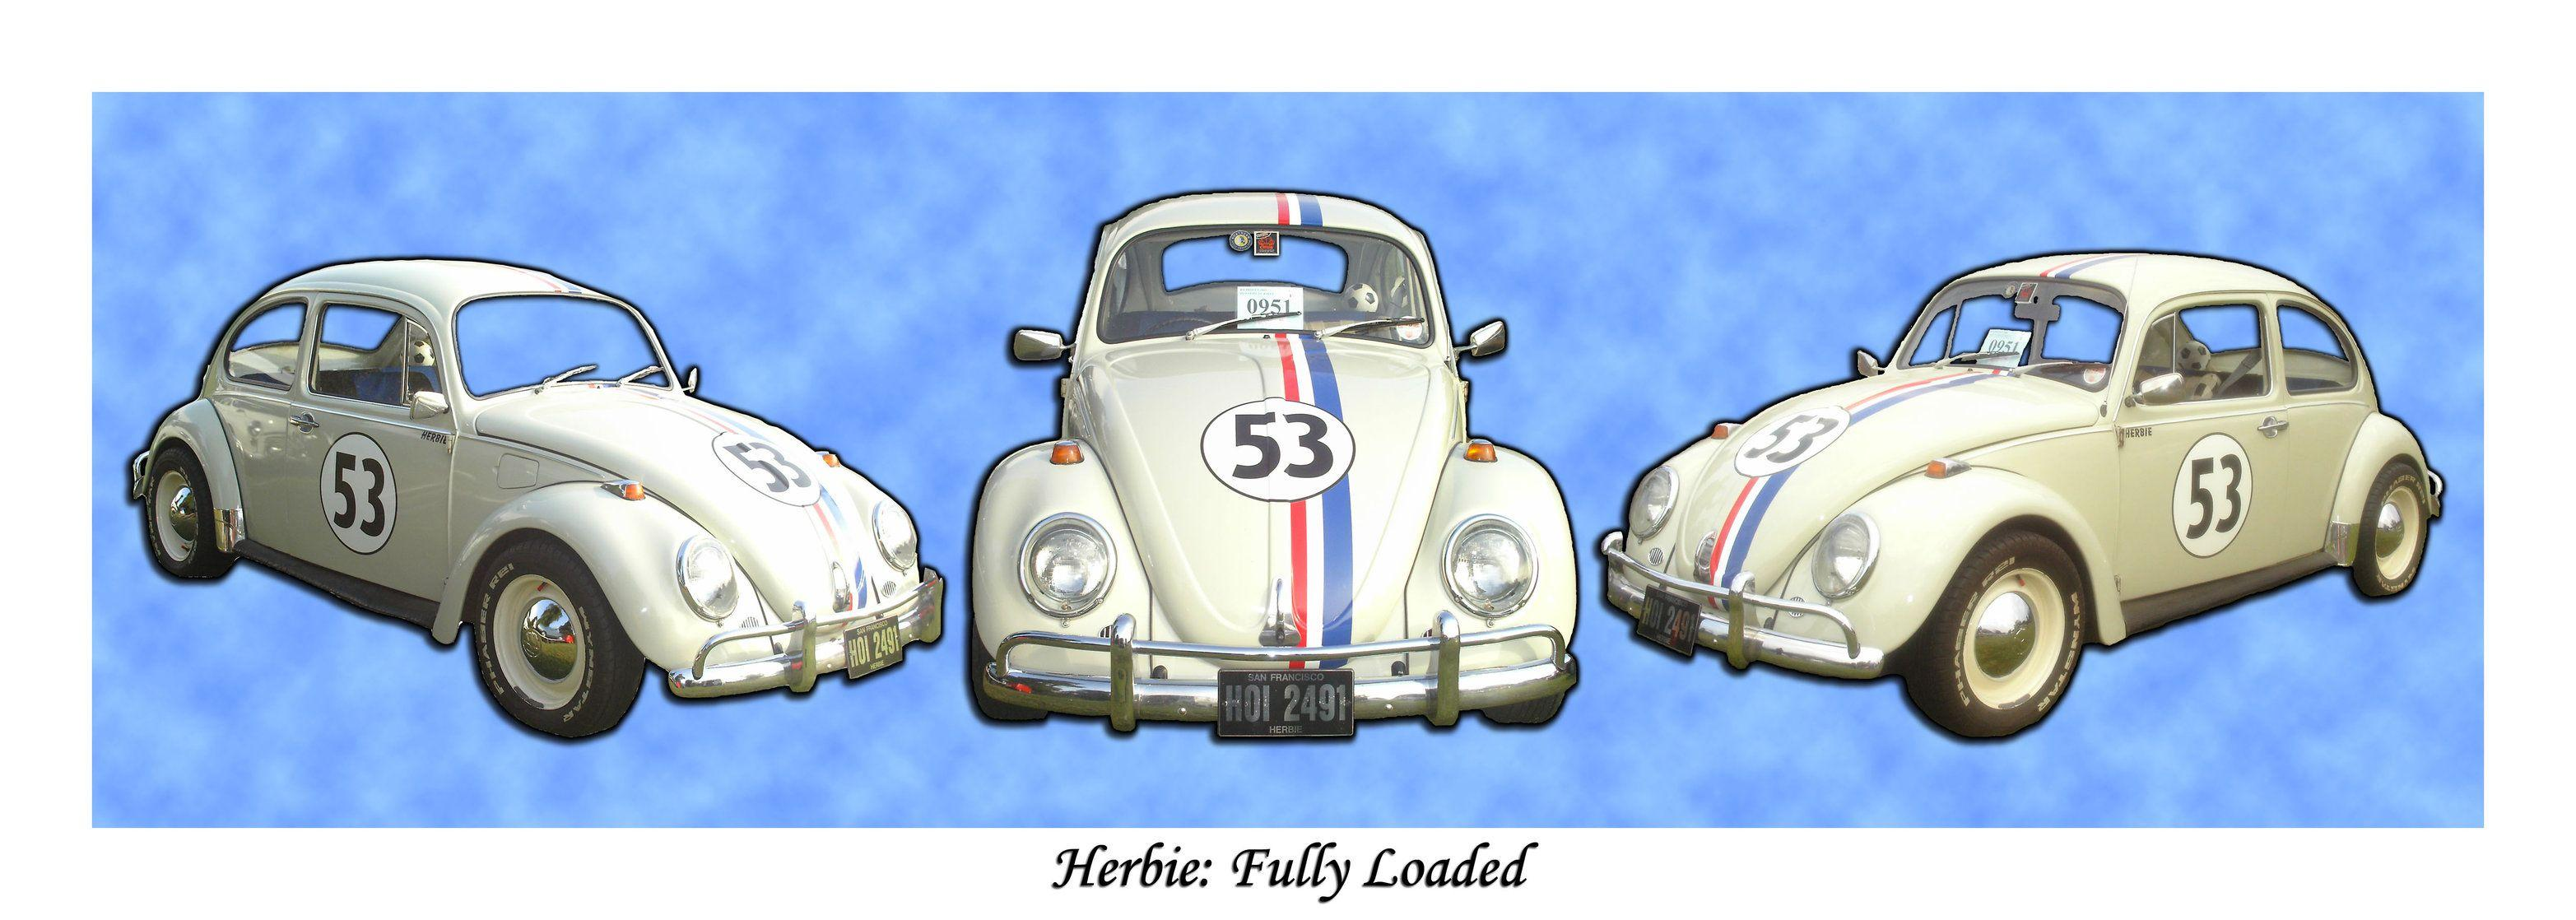 Divine advice for herbie the love bug the skull island times